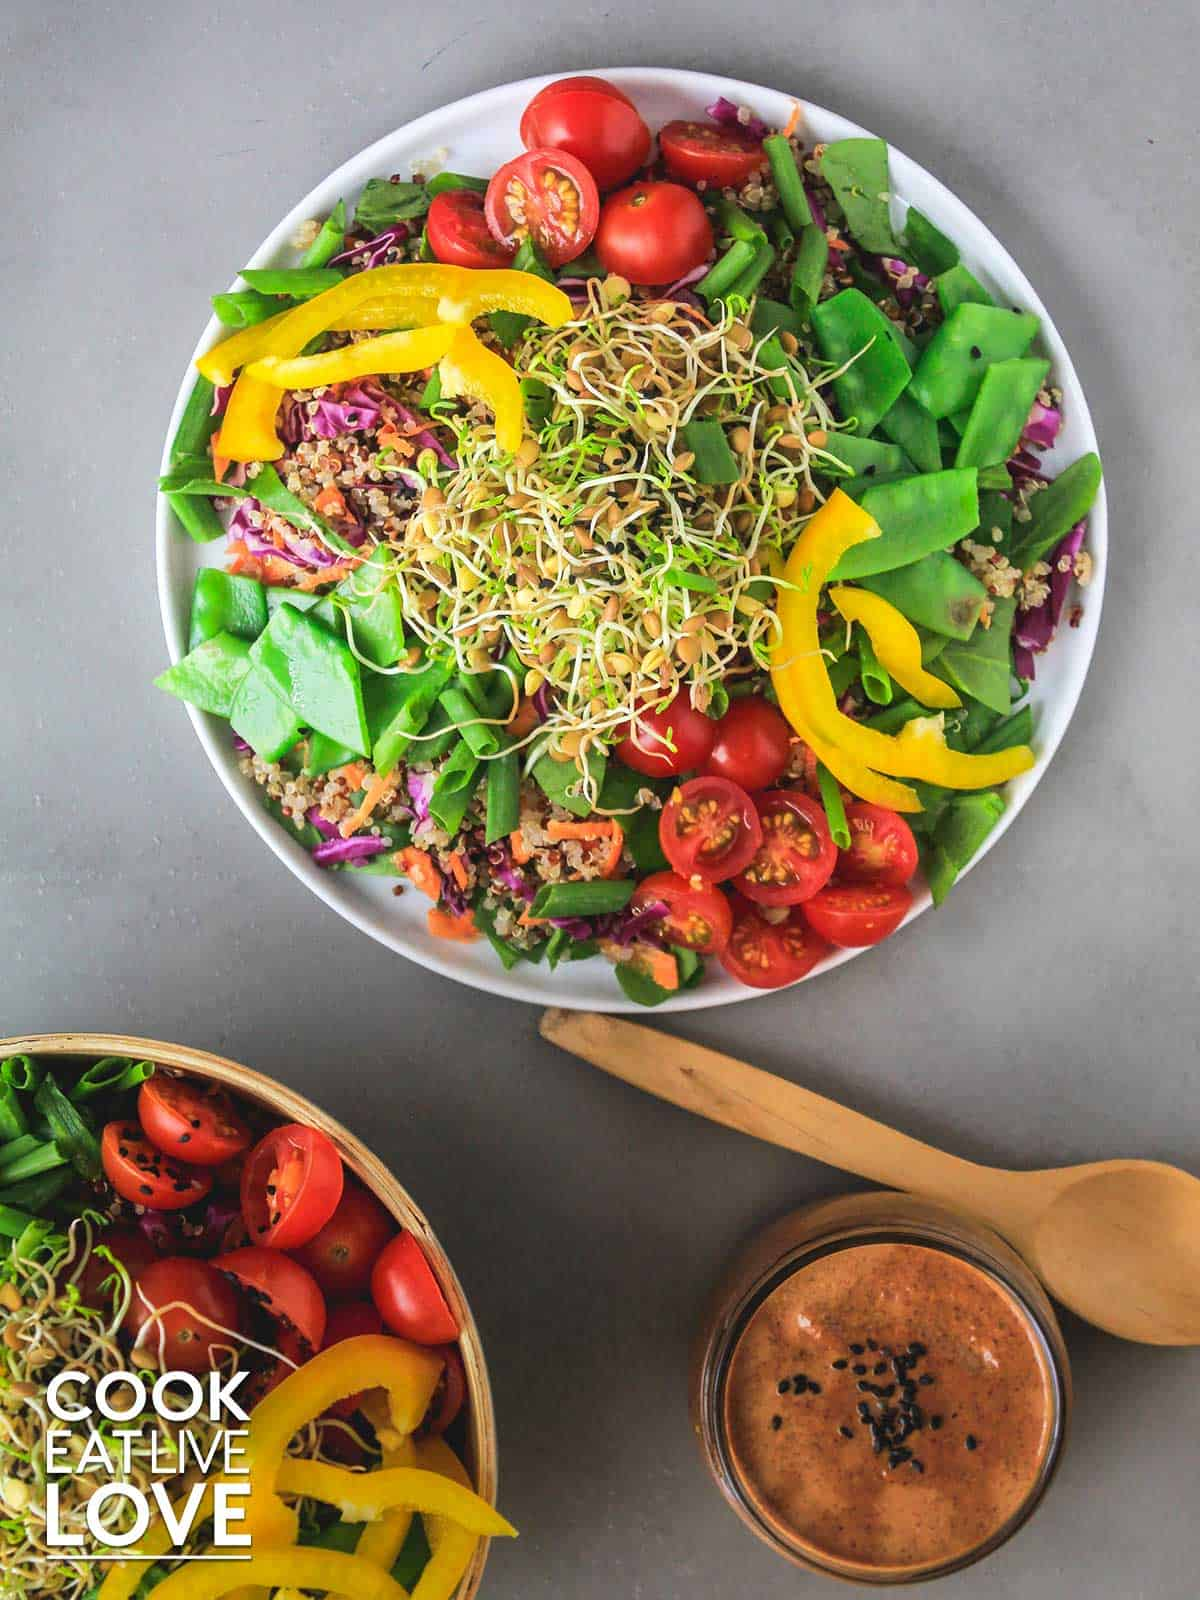 Lentil sprouts on salad plate with dressing and bowl of salad